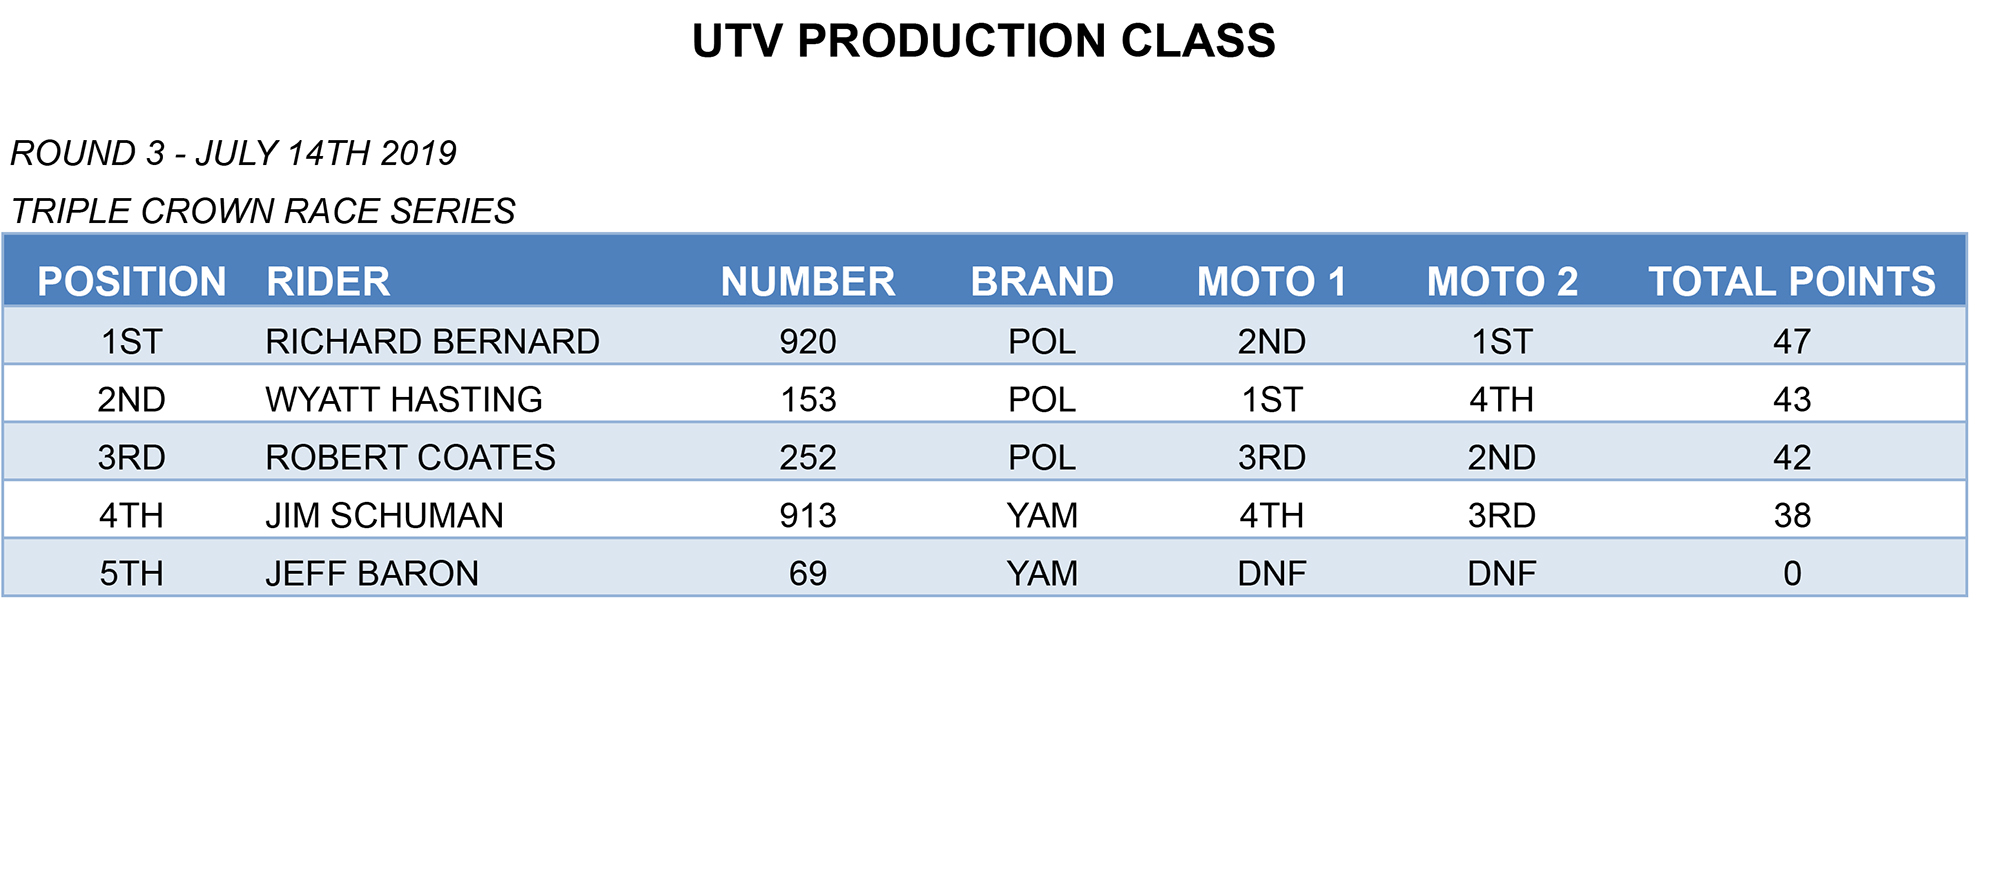 CALGARY RD3 13-UTV PRODUCTION.jpg